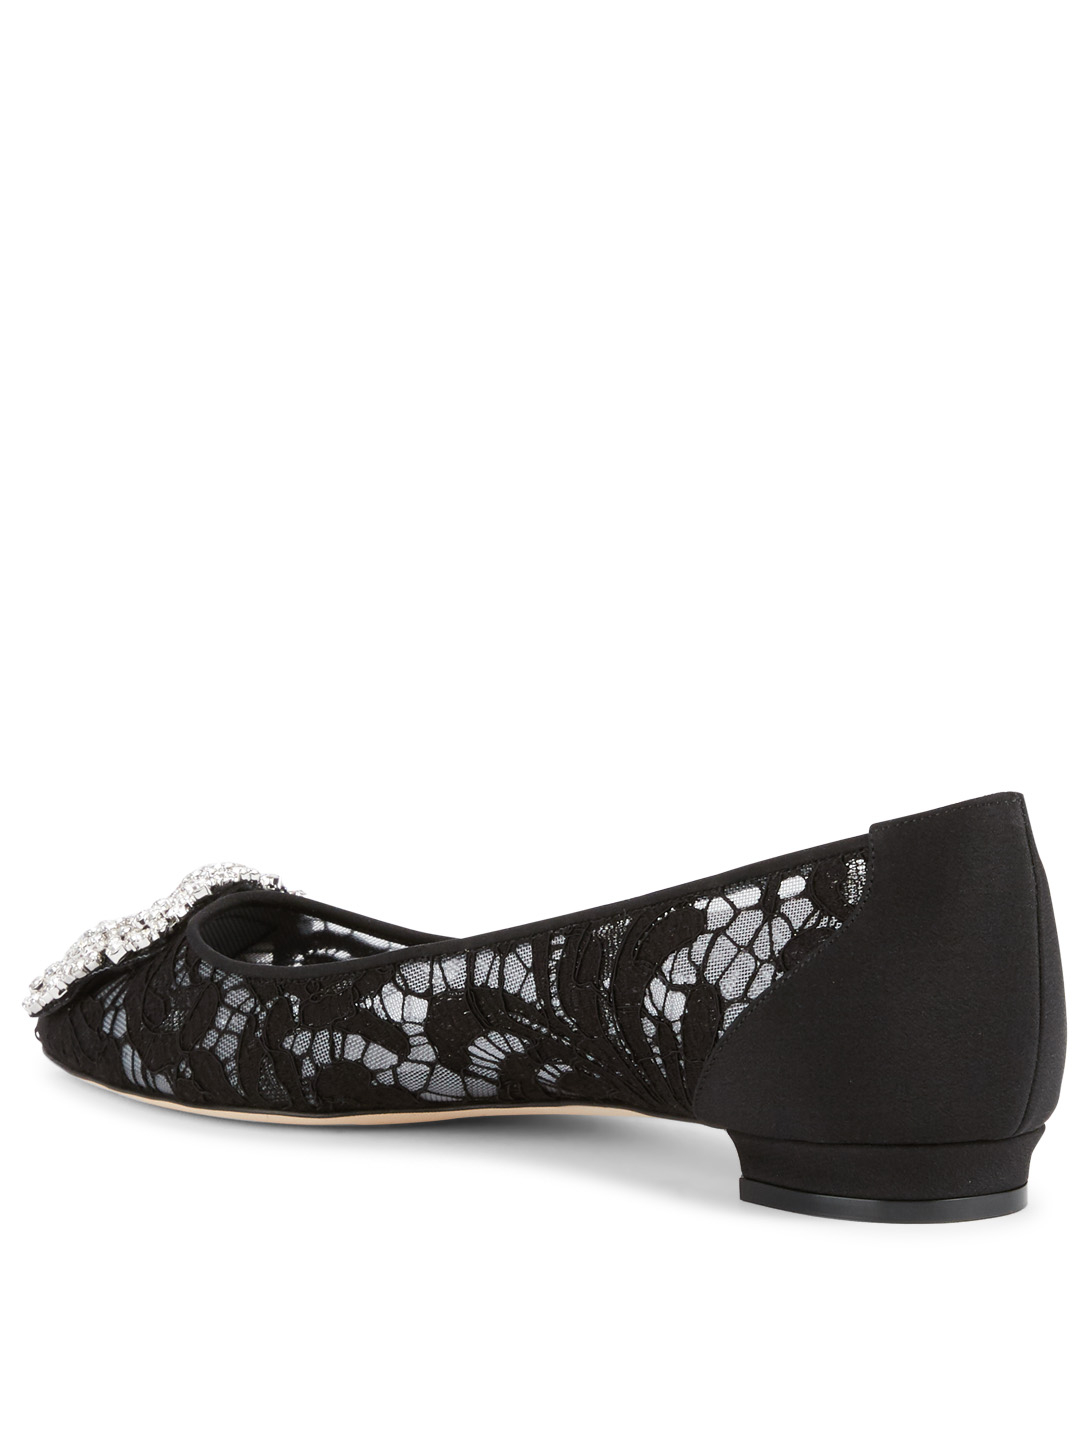 MANOLO BLAHNIK Hangisi Lace Flats With Crystal Buckle Womens Black